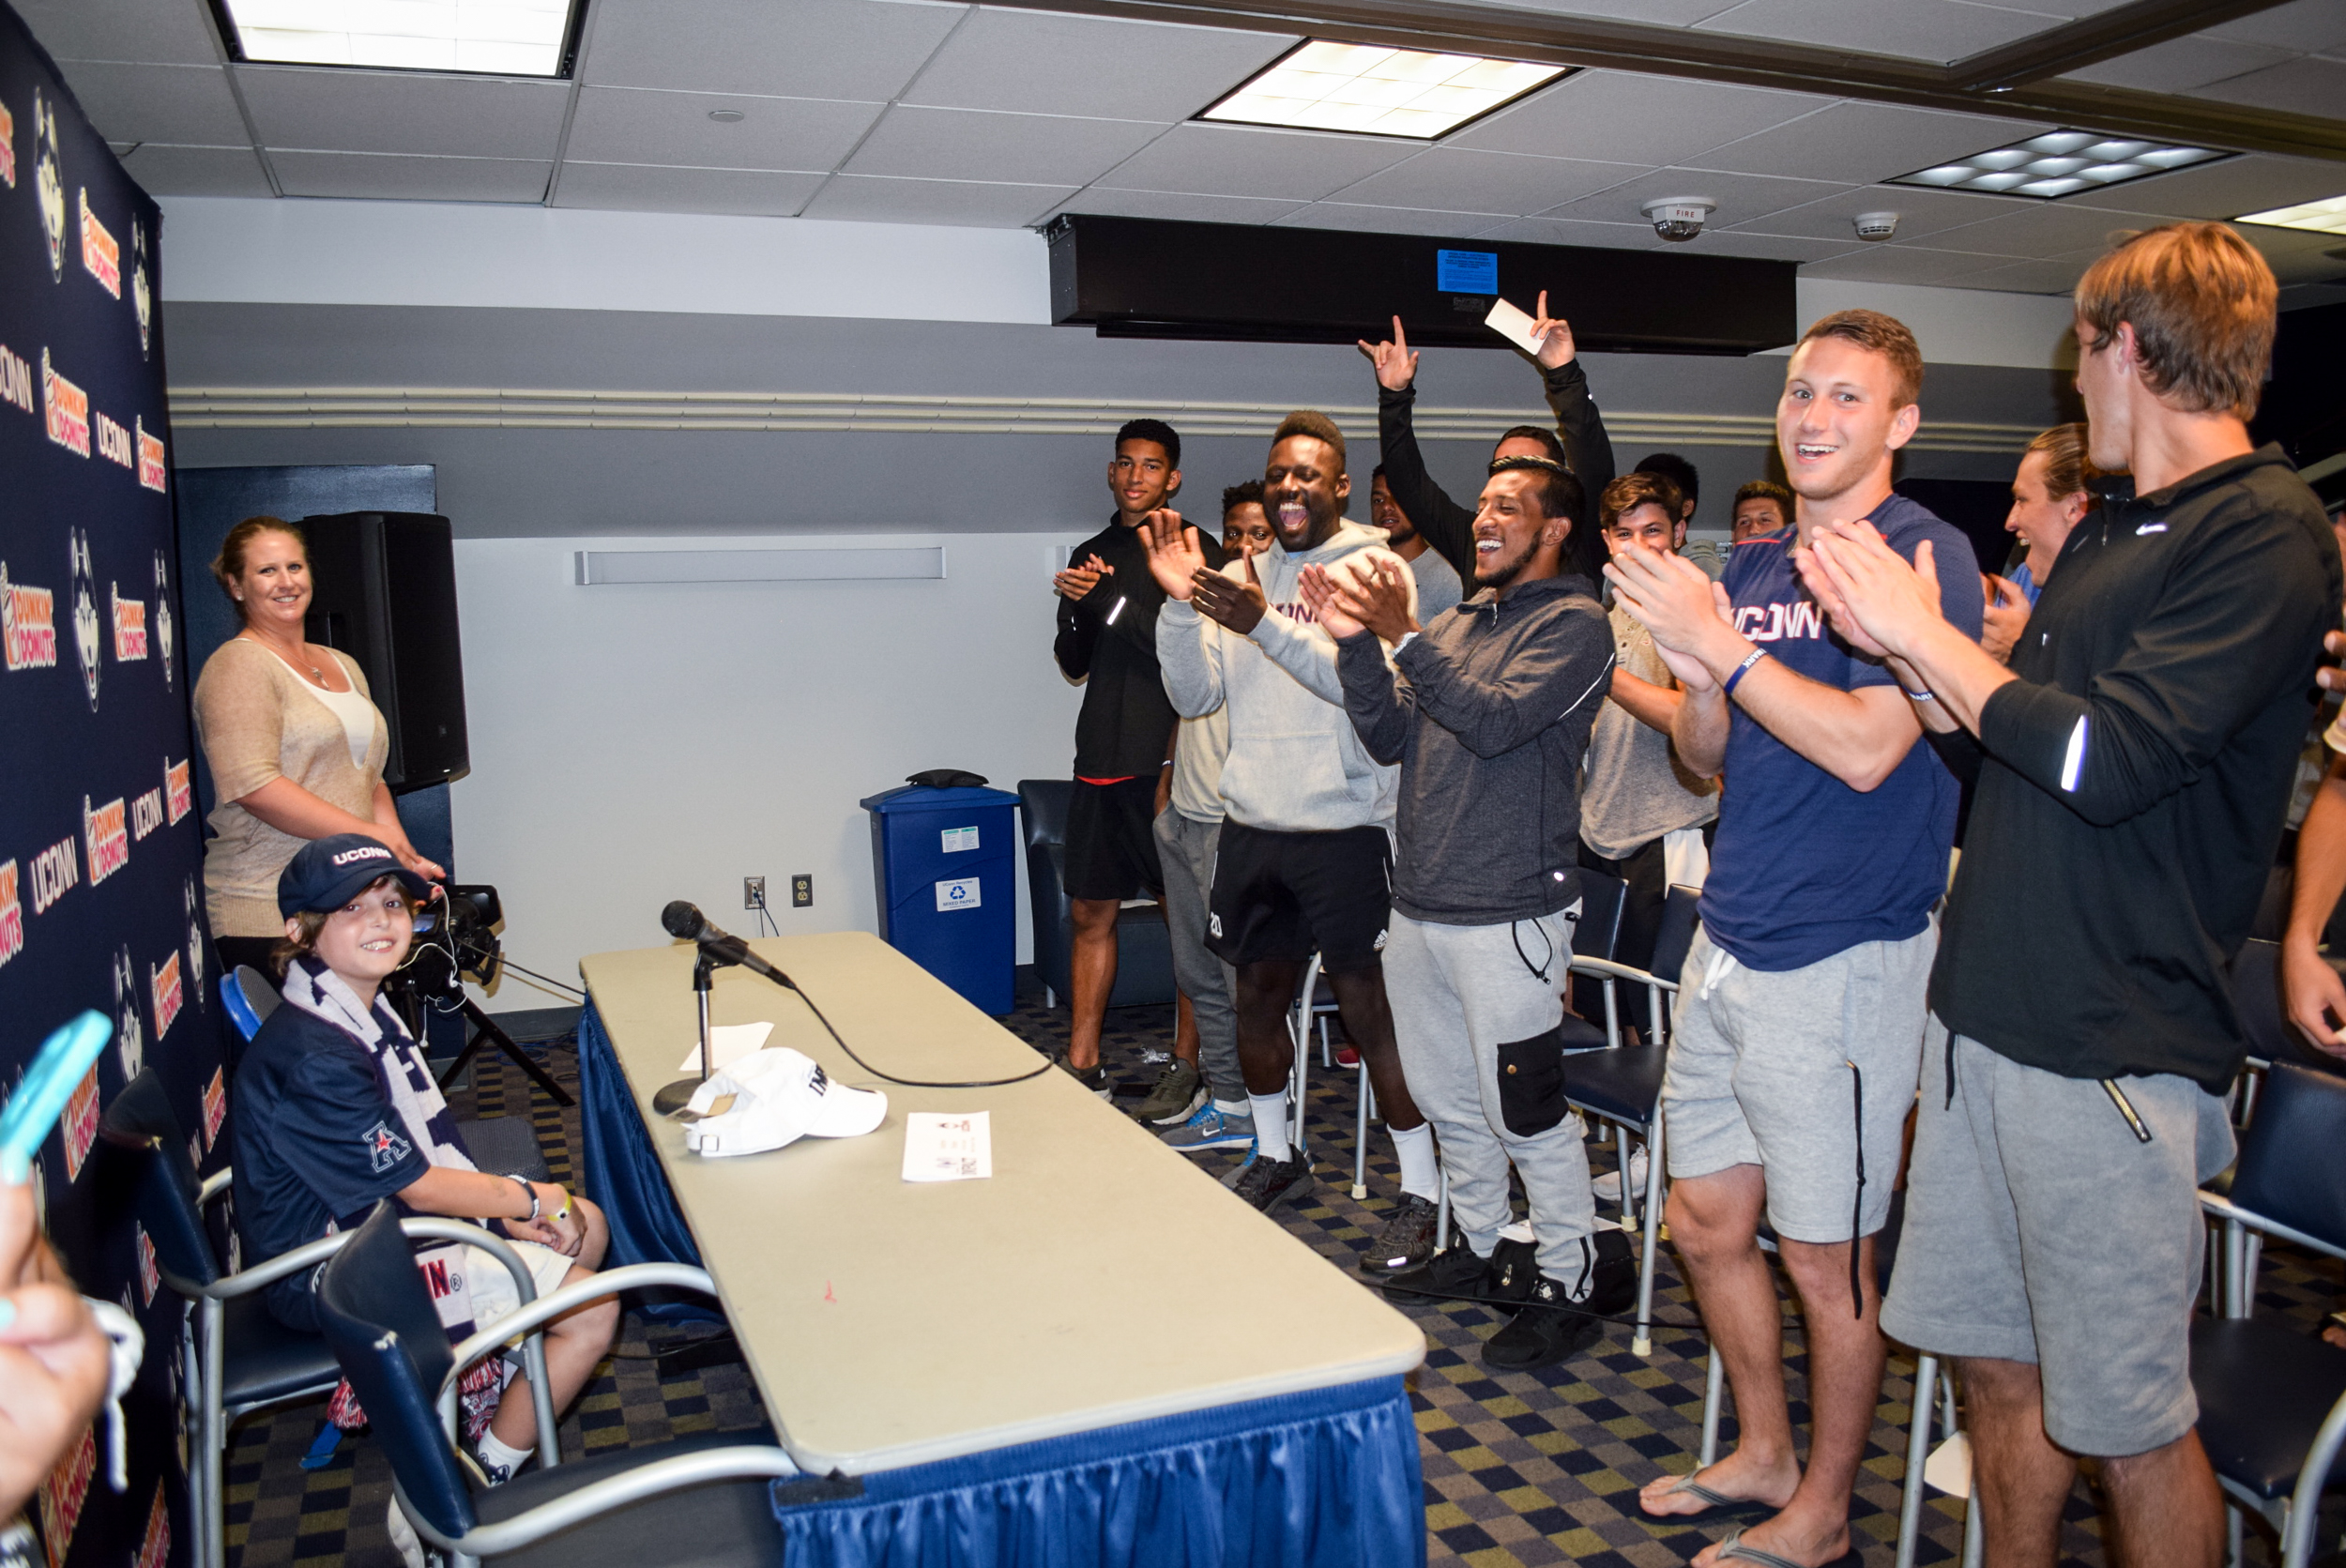 Maddox Bruening, a 13-year-old from South Glastonbury, Connecticut, was introduced as the newest member of the Husky team at a press conference that included his parents, Joey and Sherry, as well as the UConn coaching staff and team.